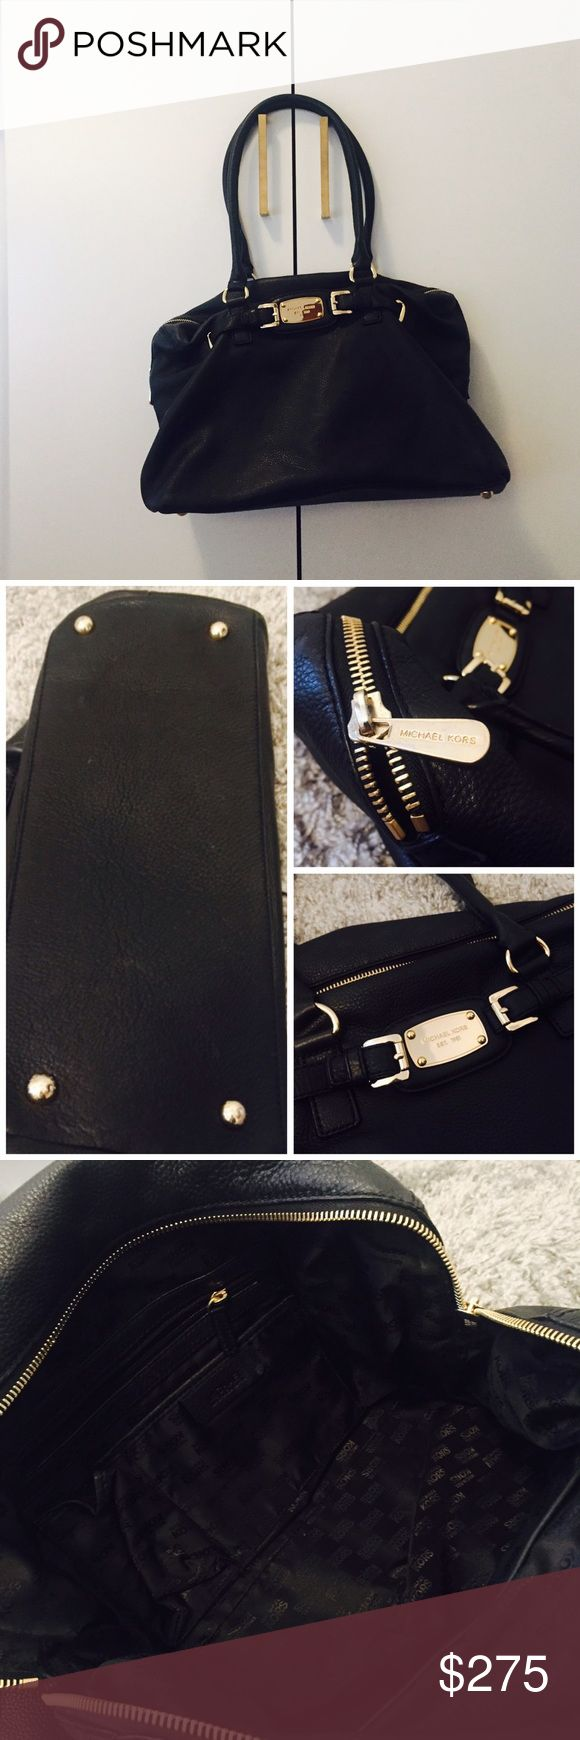 Authentic Michael Kors Black Bag In a very great condition. Gold hardware. It is big enough to be your travel bag. Stay chic while traveling! :) 5 pockets inside. Michael Kors Bags